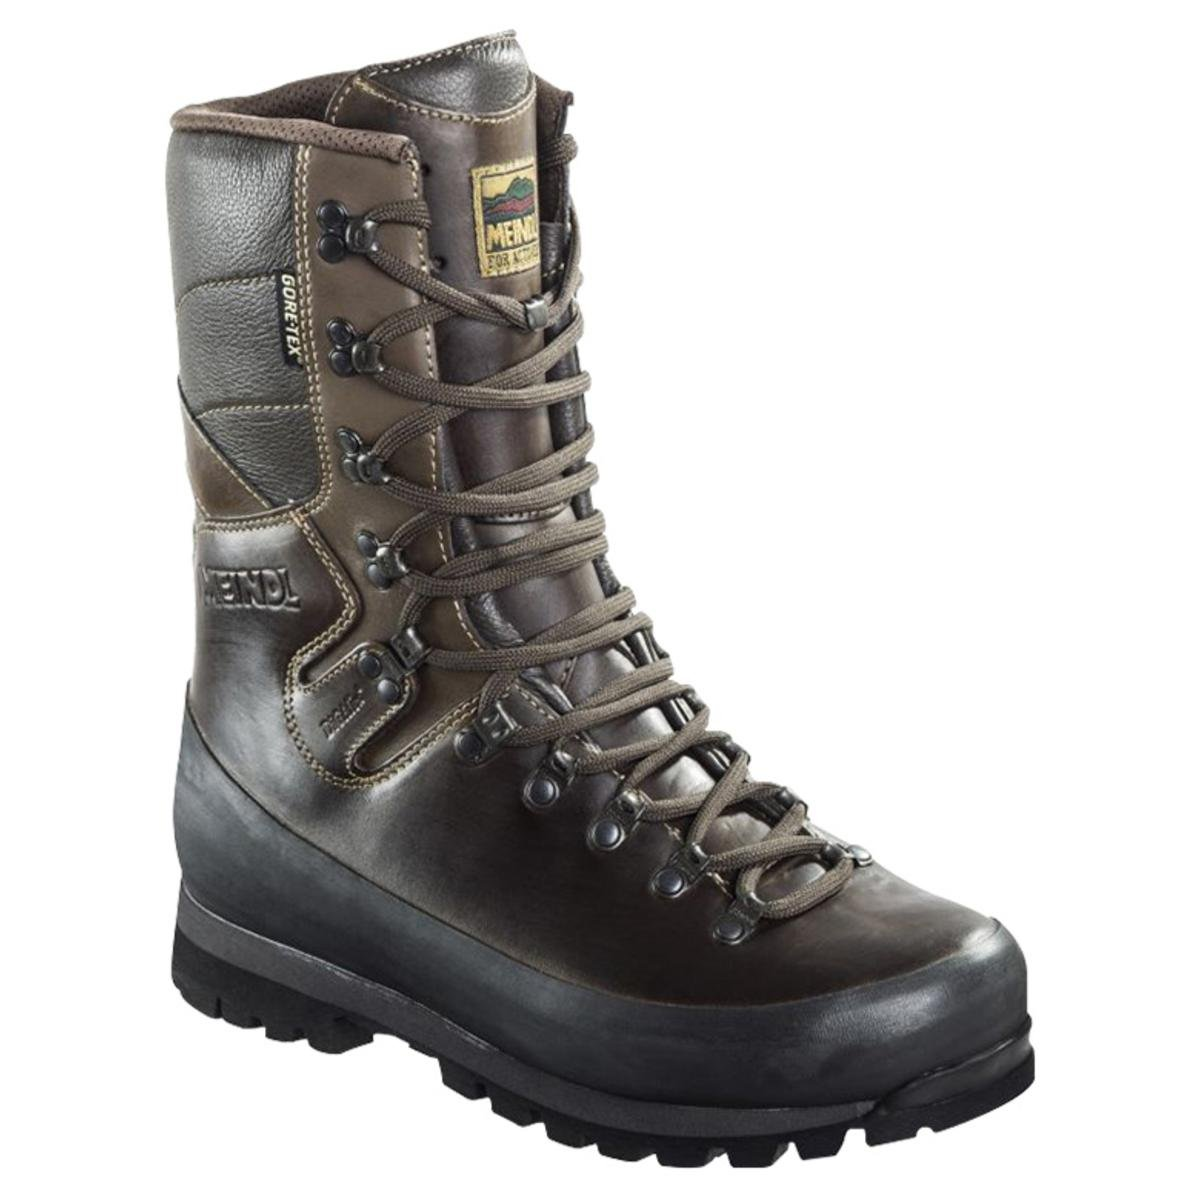 Meindl Dovre Extreme GTX - wide Boots UK 13